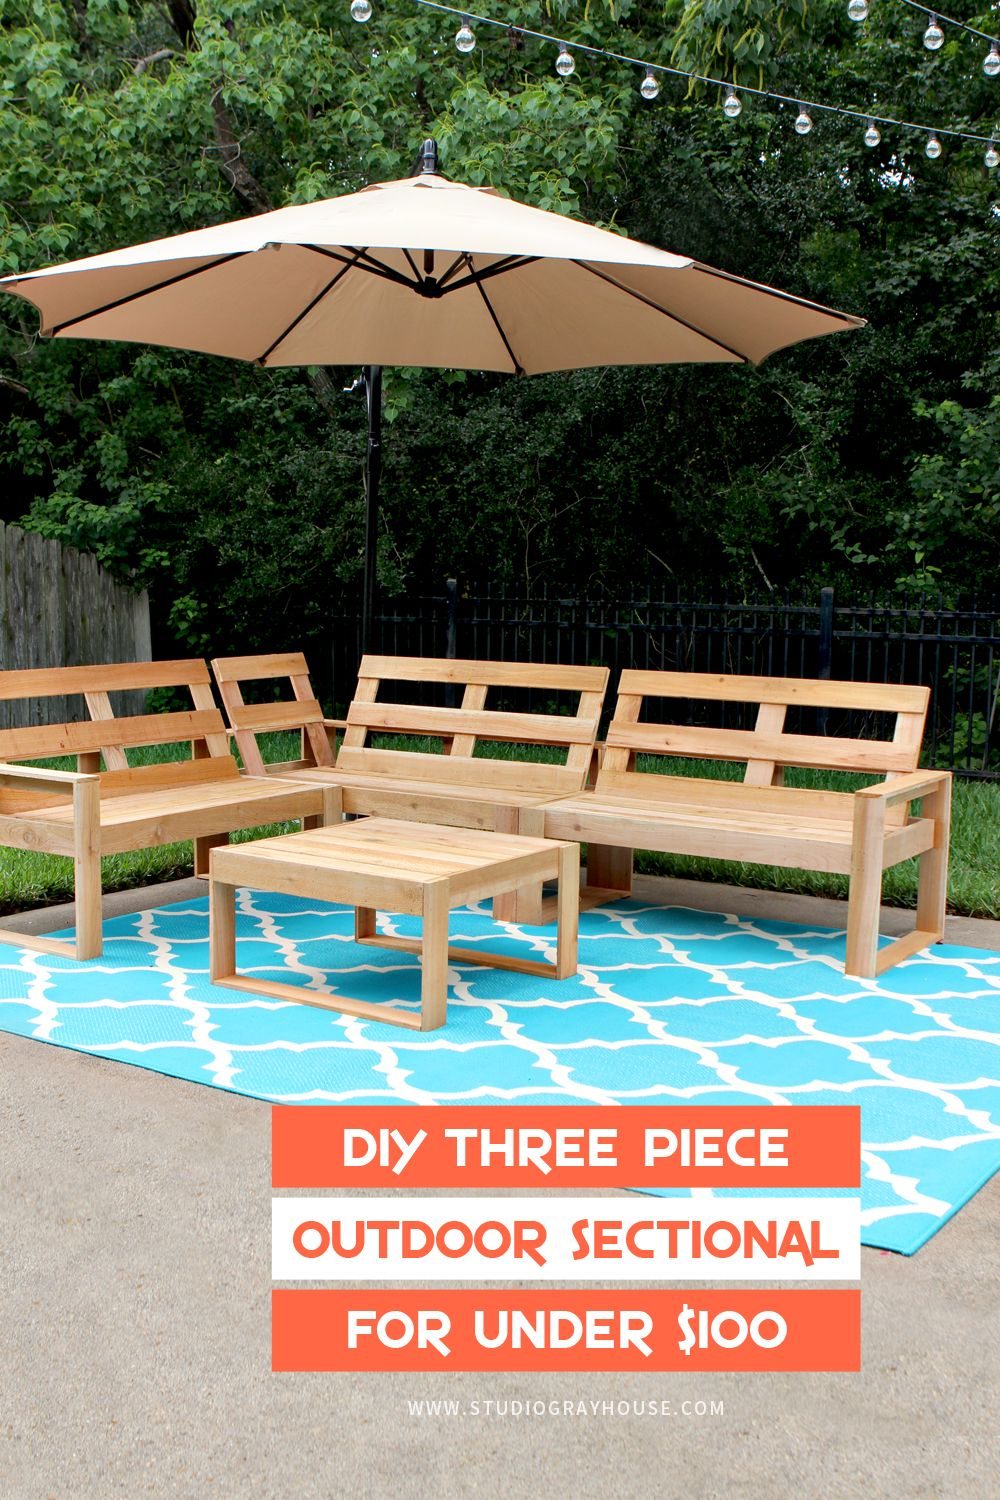 How To Make An Outdoor Sectional Diy